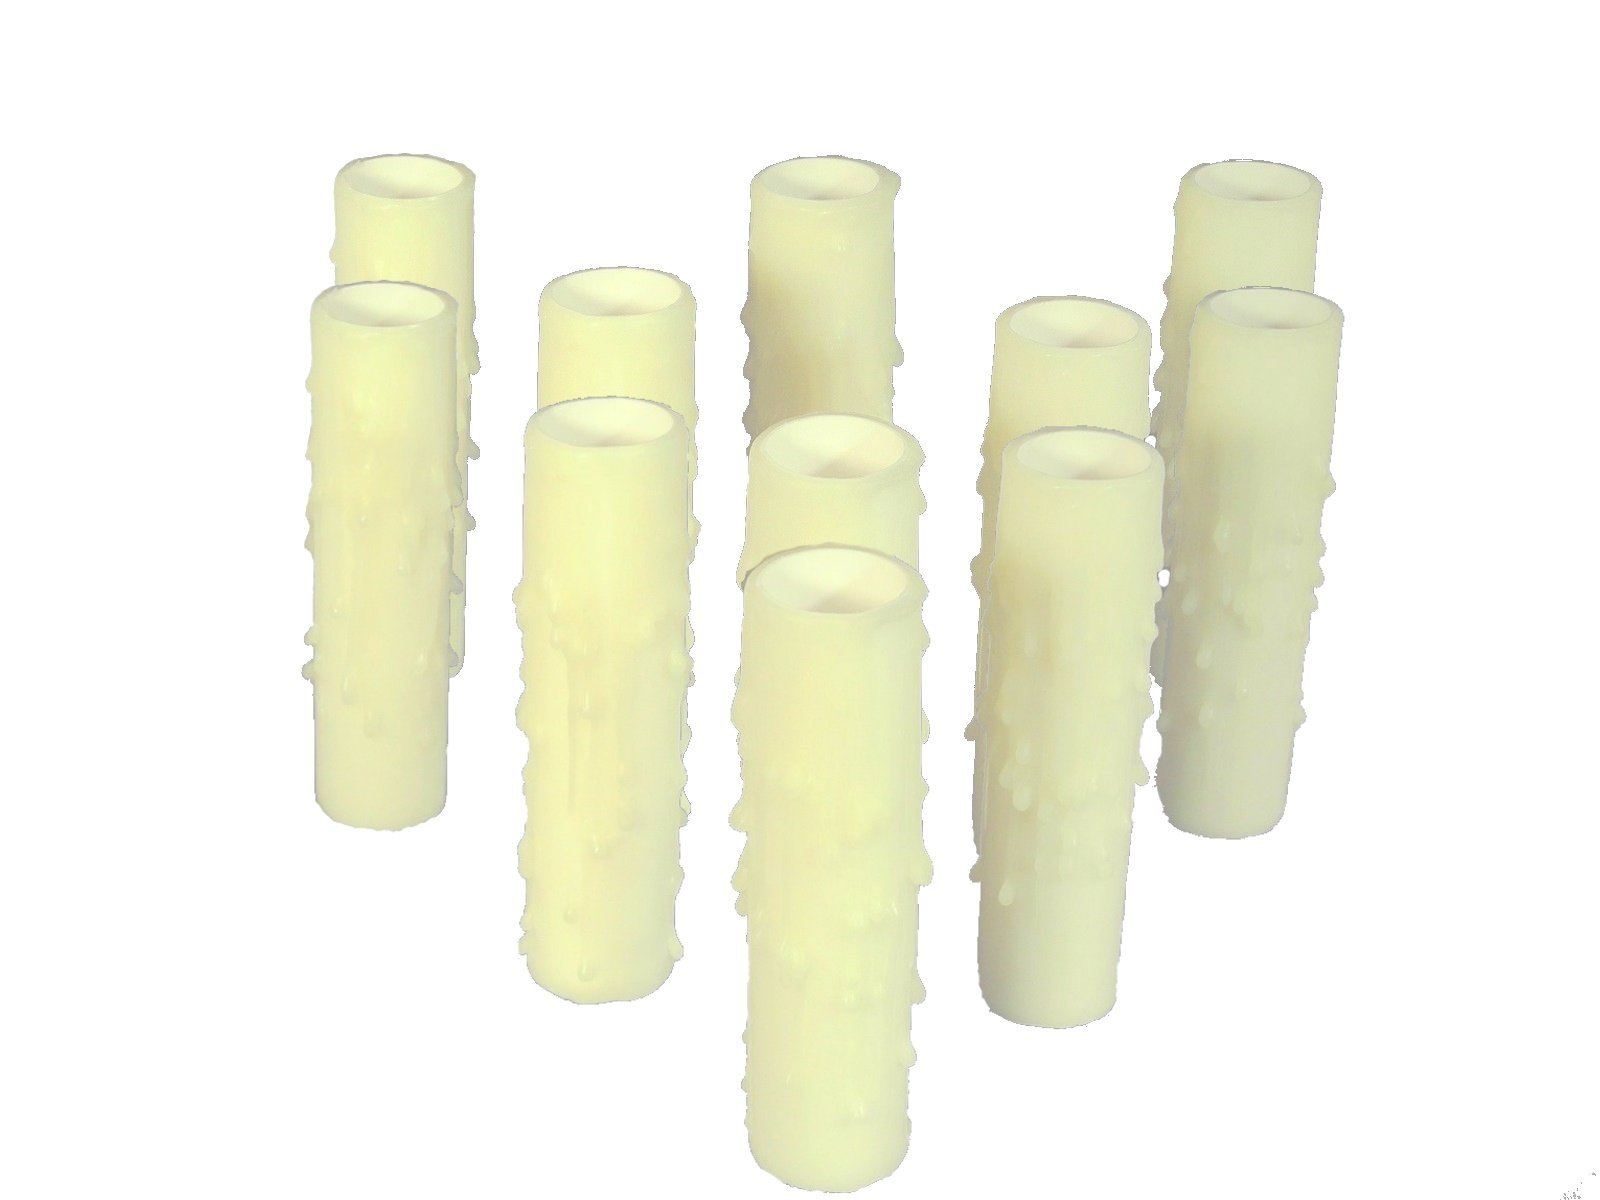 Set of 12 pc. 3'' Tall Bone Candelabra Base Thin 3/4'' Inner Diameter Beeswax Candle Covers, Socket Sleeves Chandelier Socket Covers